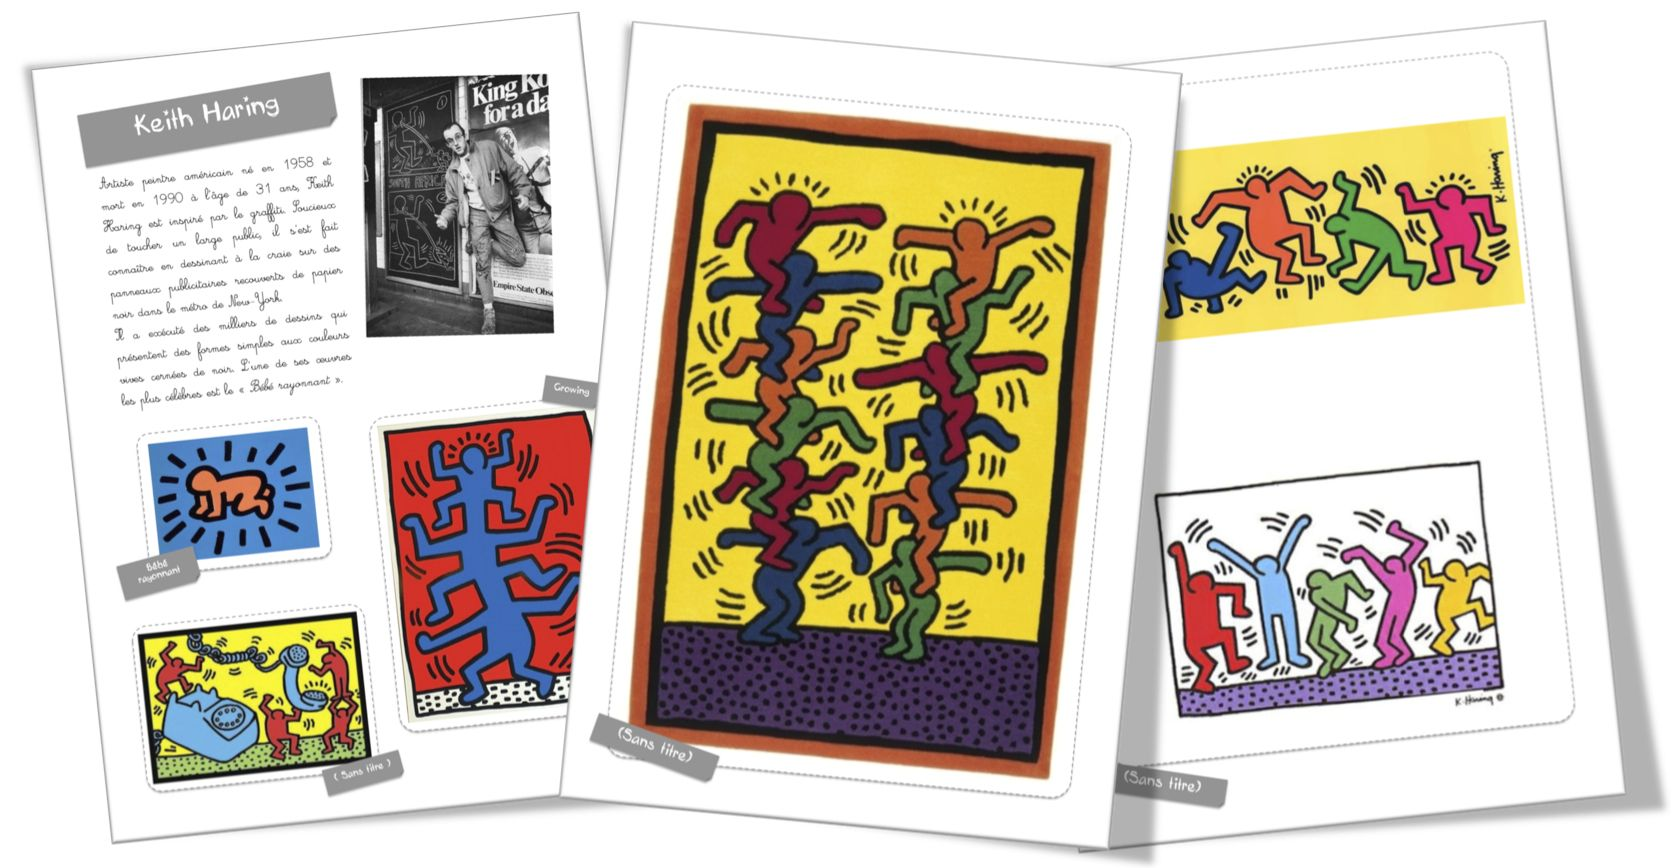 Top Fiche artiste : Keith Haring | Dossier, Fiches et Keith haring CW25